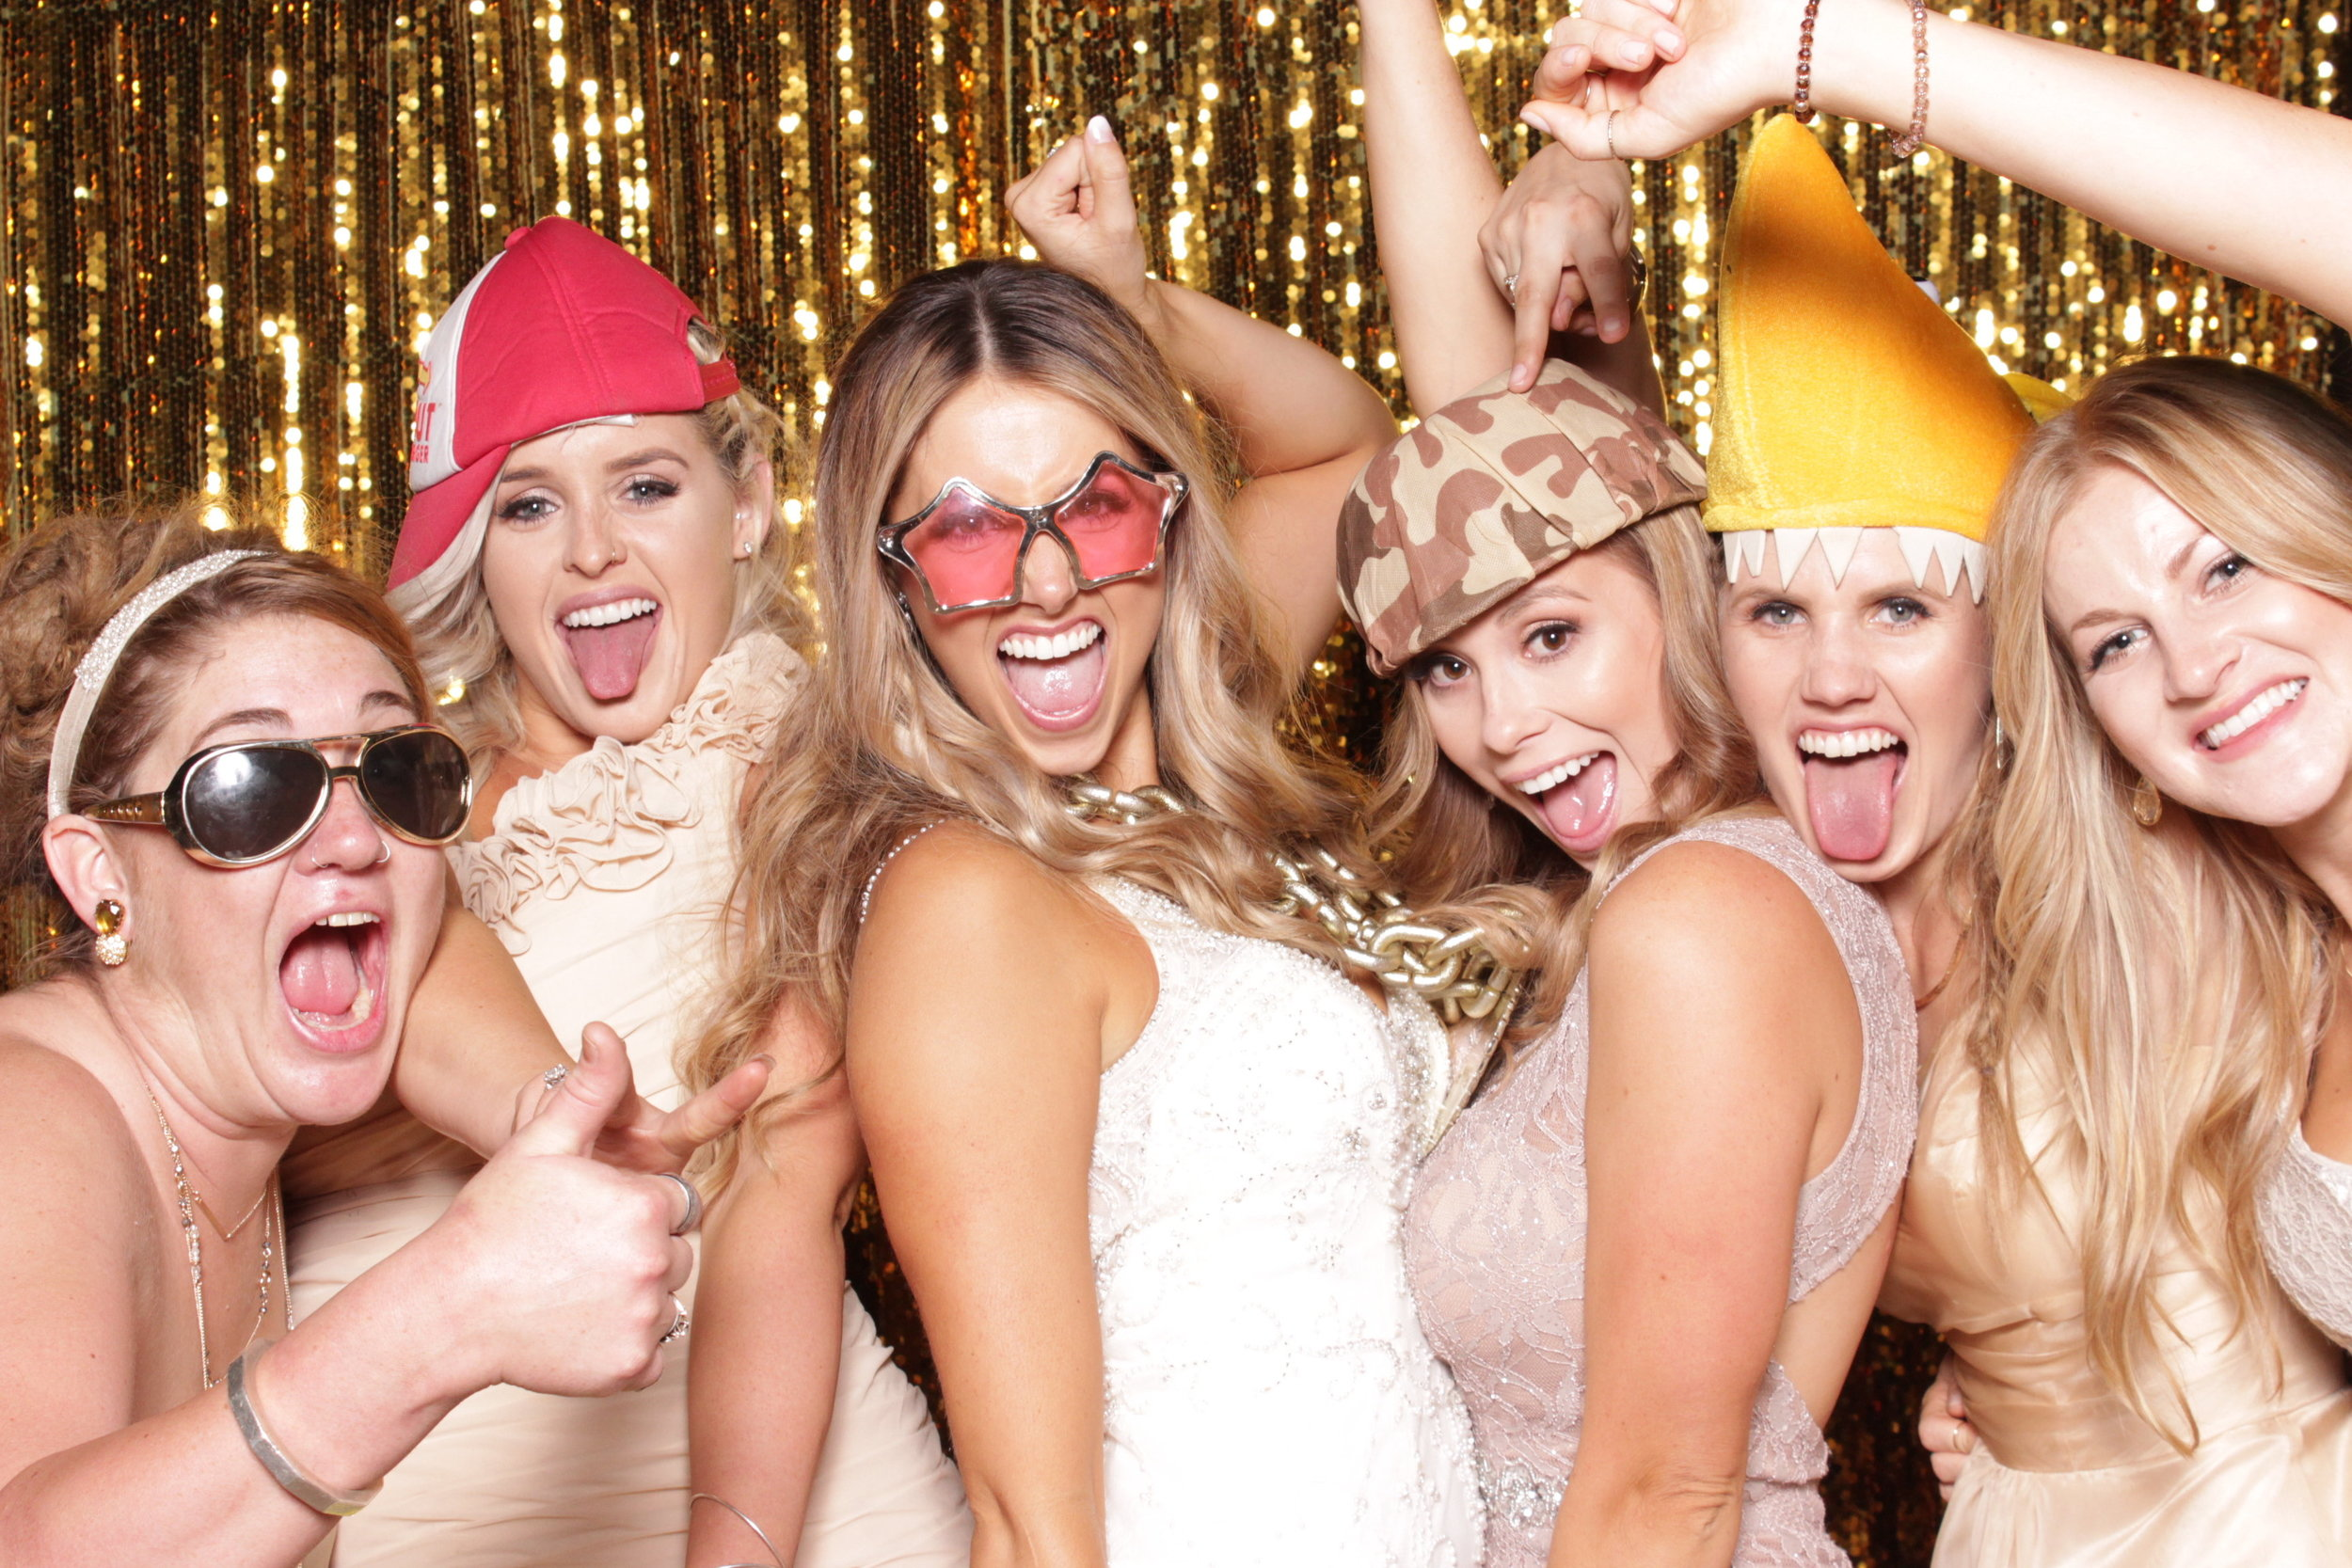 photo-booths-in-chico-rental-wedding-bride-and-her-girls